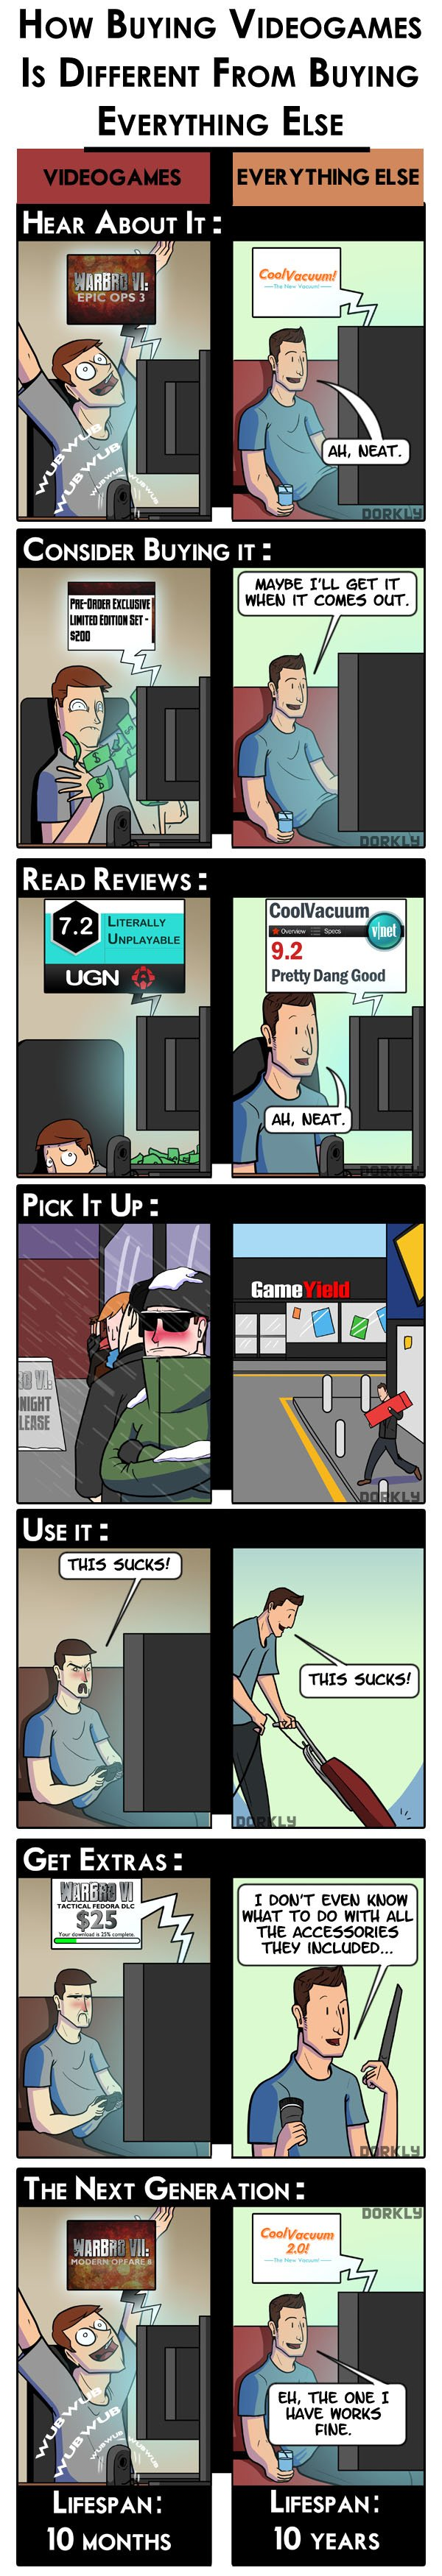 how-buying-videogames-is-different-from-buying-everything-else-dorkly